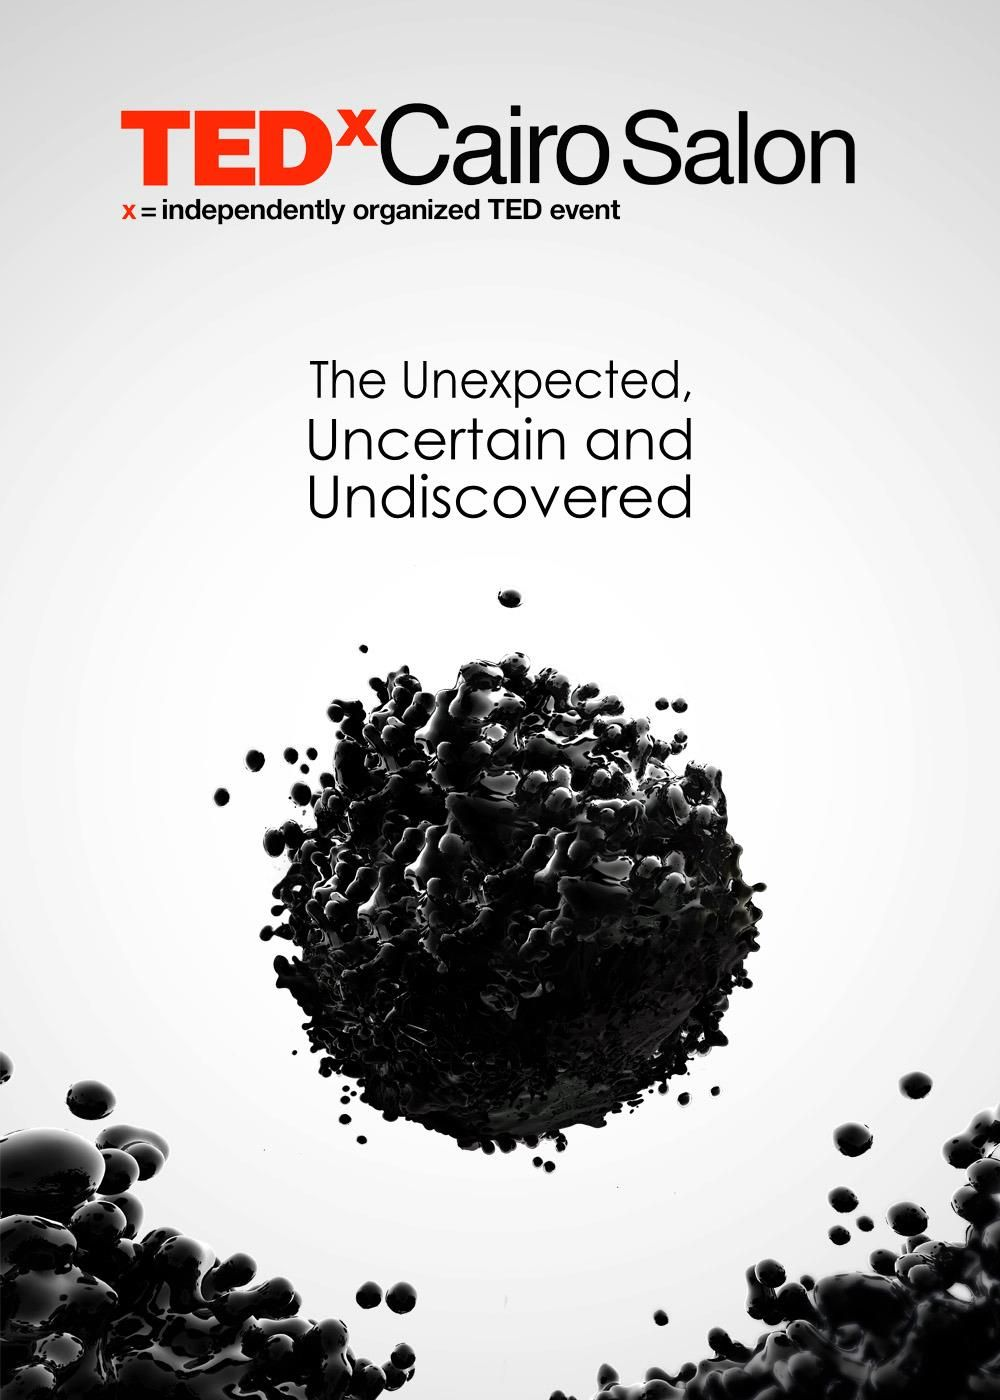 TEDxCairoSalon - The Unexpected, Uncertain and Undiscovered. May 2012.